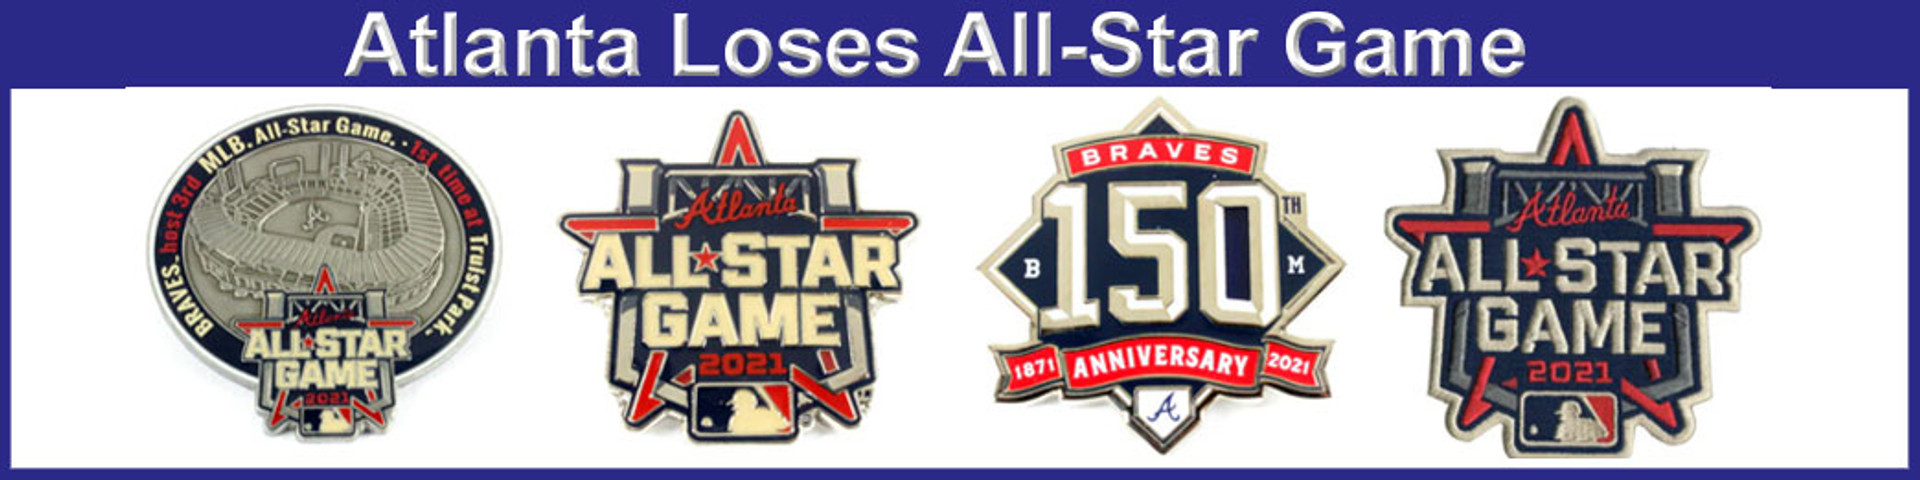 2021 atlanta all star game pins